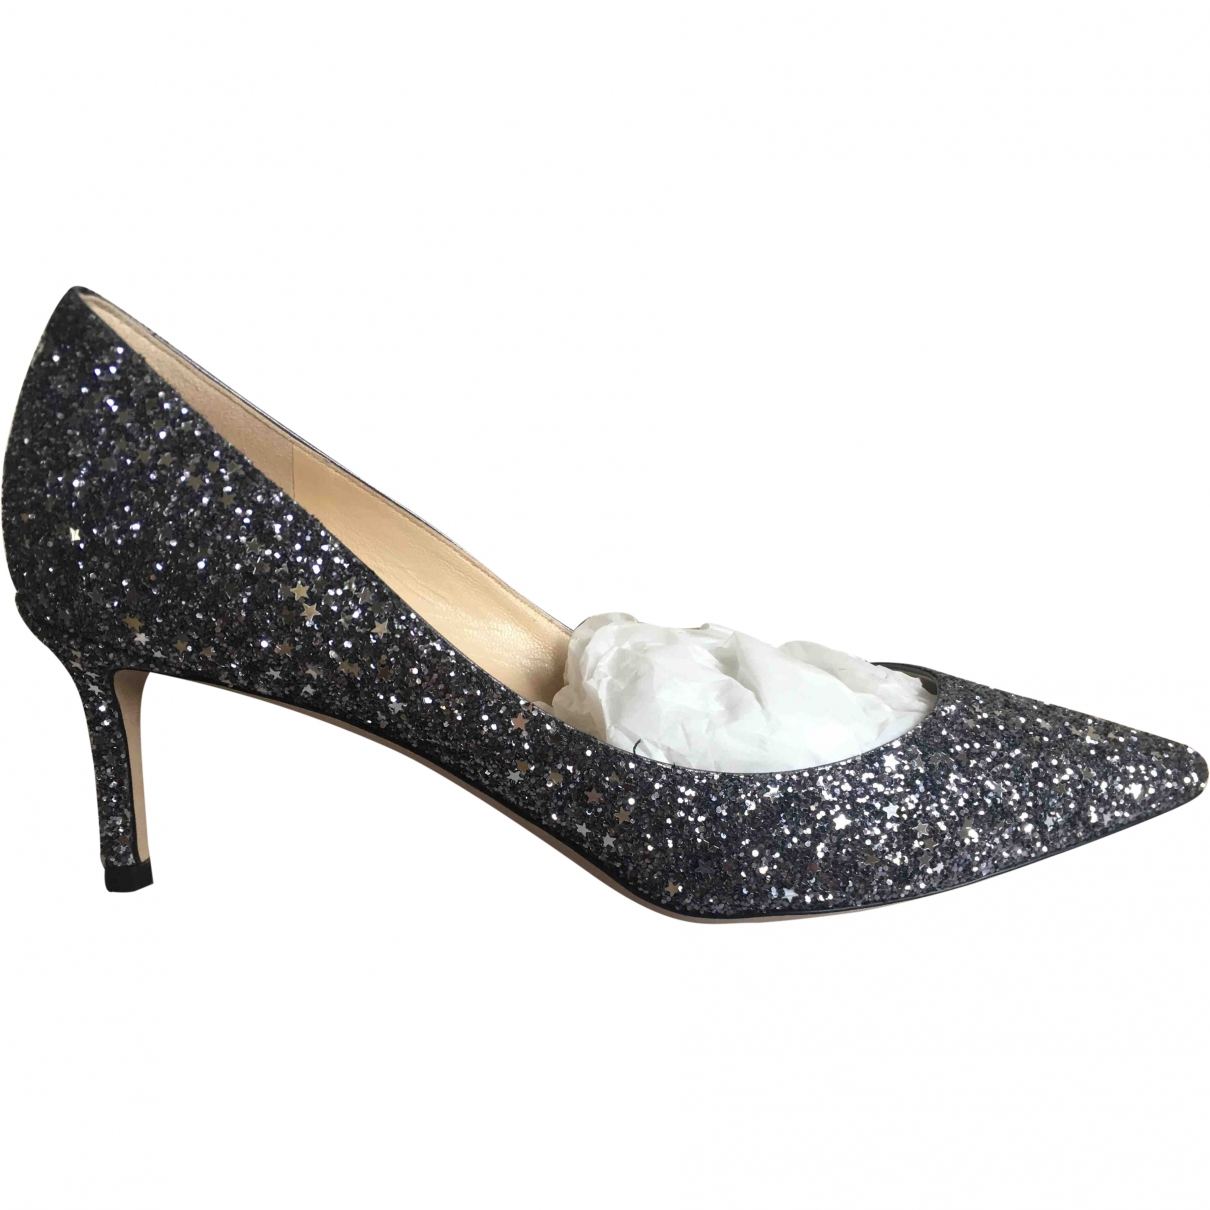 Jimmy Choo Romy Silver Glitter Heels for Women 39.5 EU